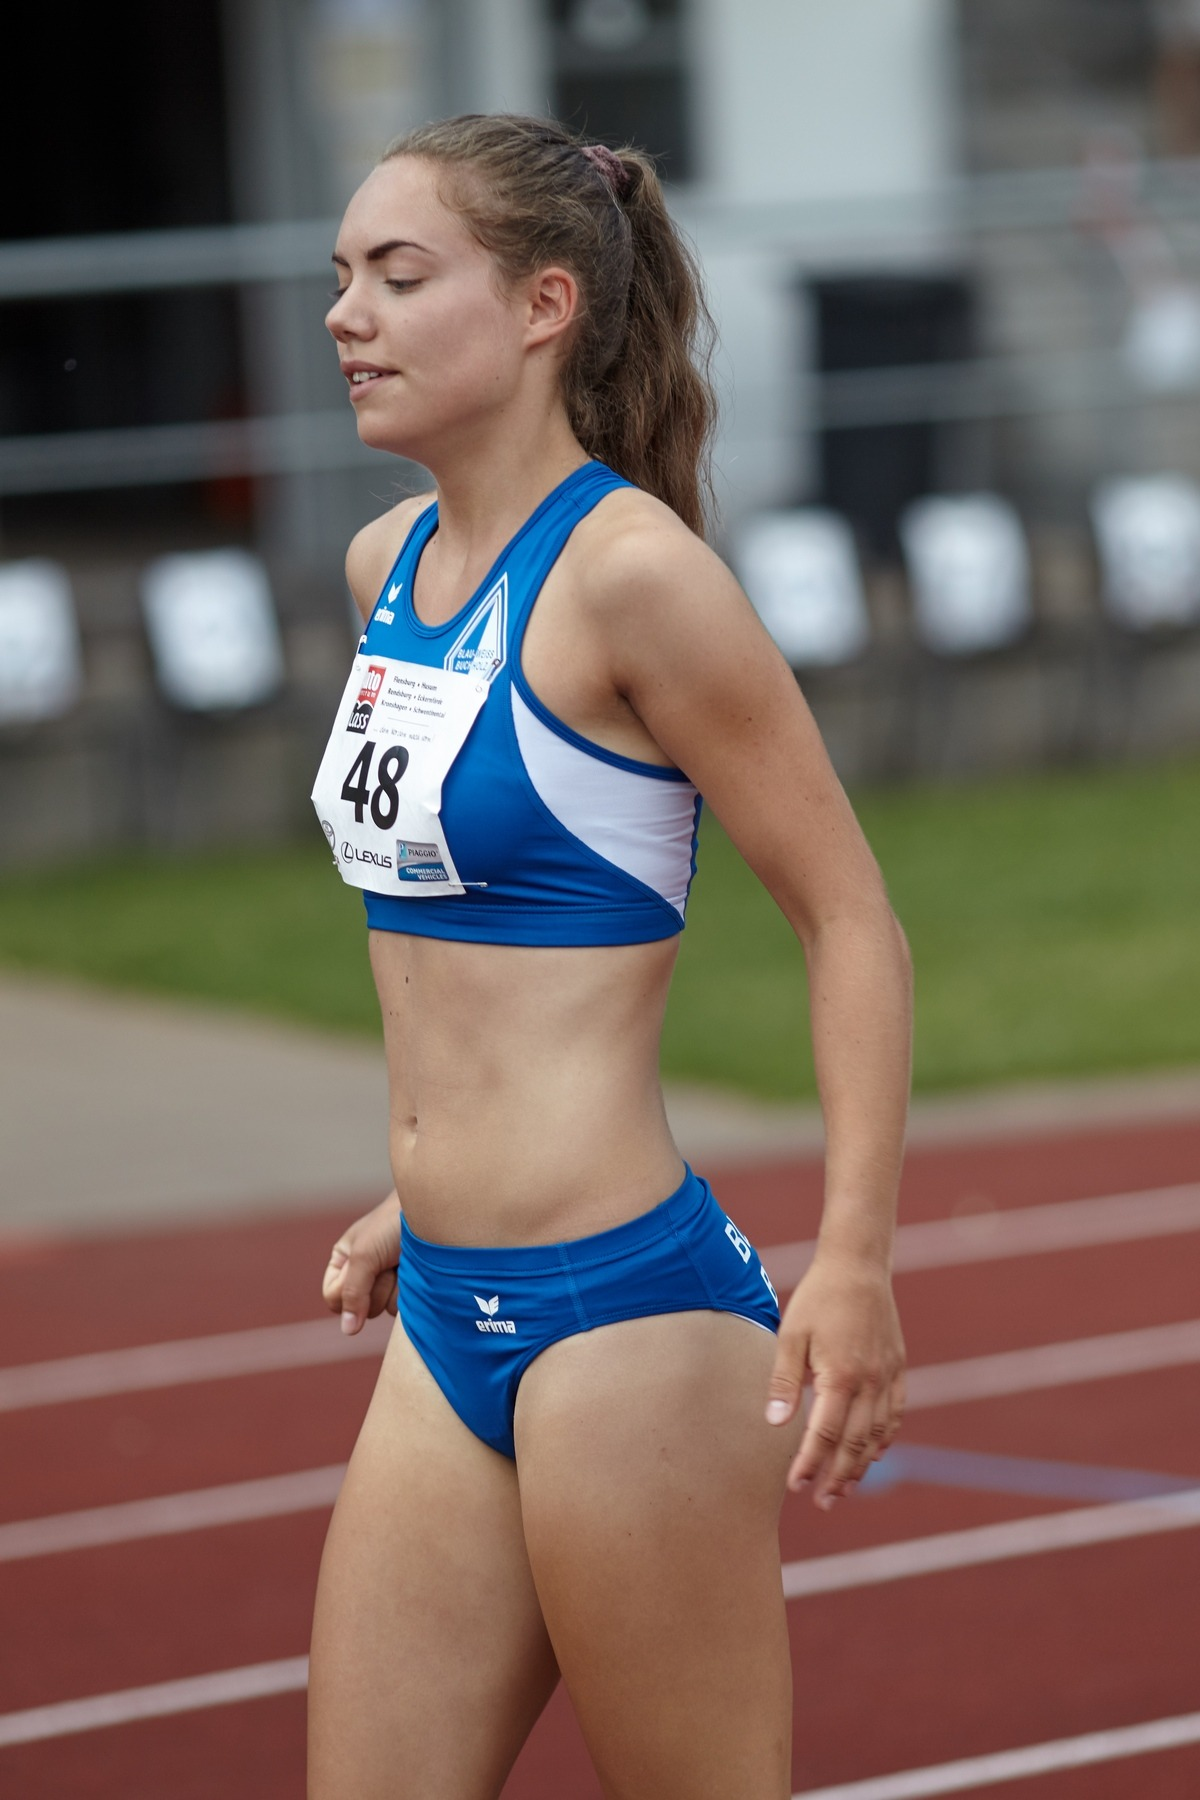 Nude Female Track And Field  Hot Girl Hd Wallpaper-6891